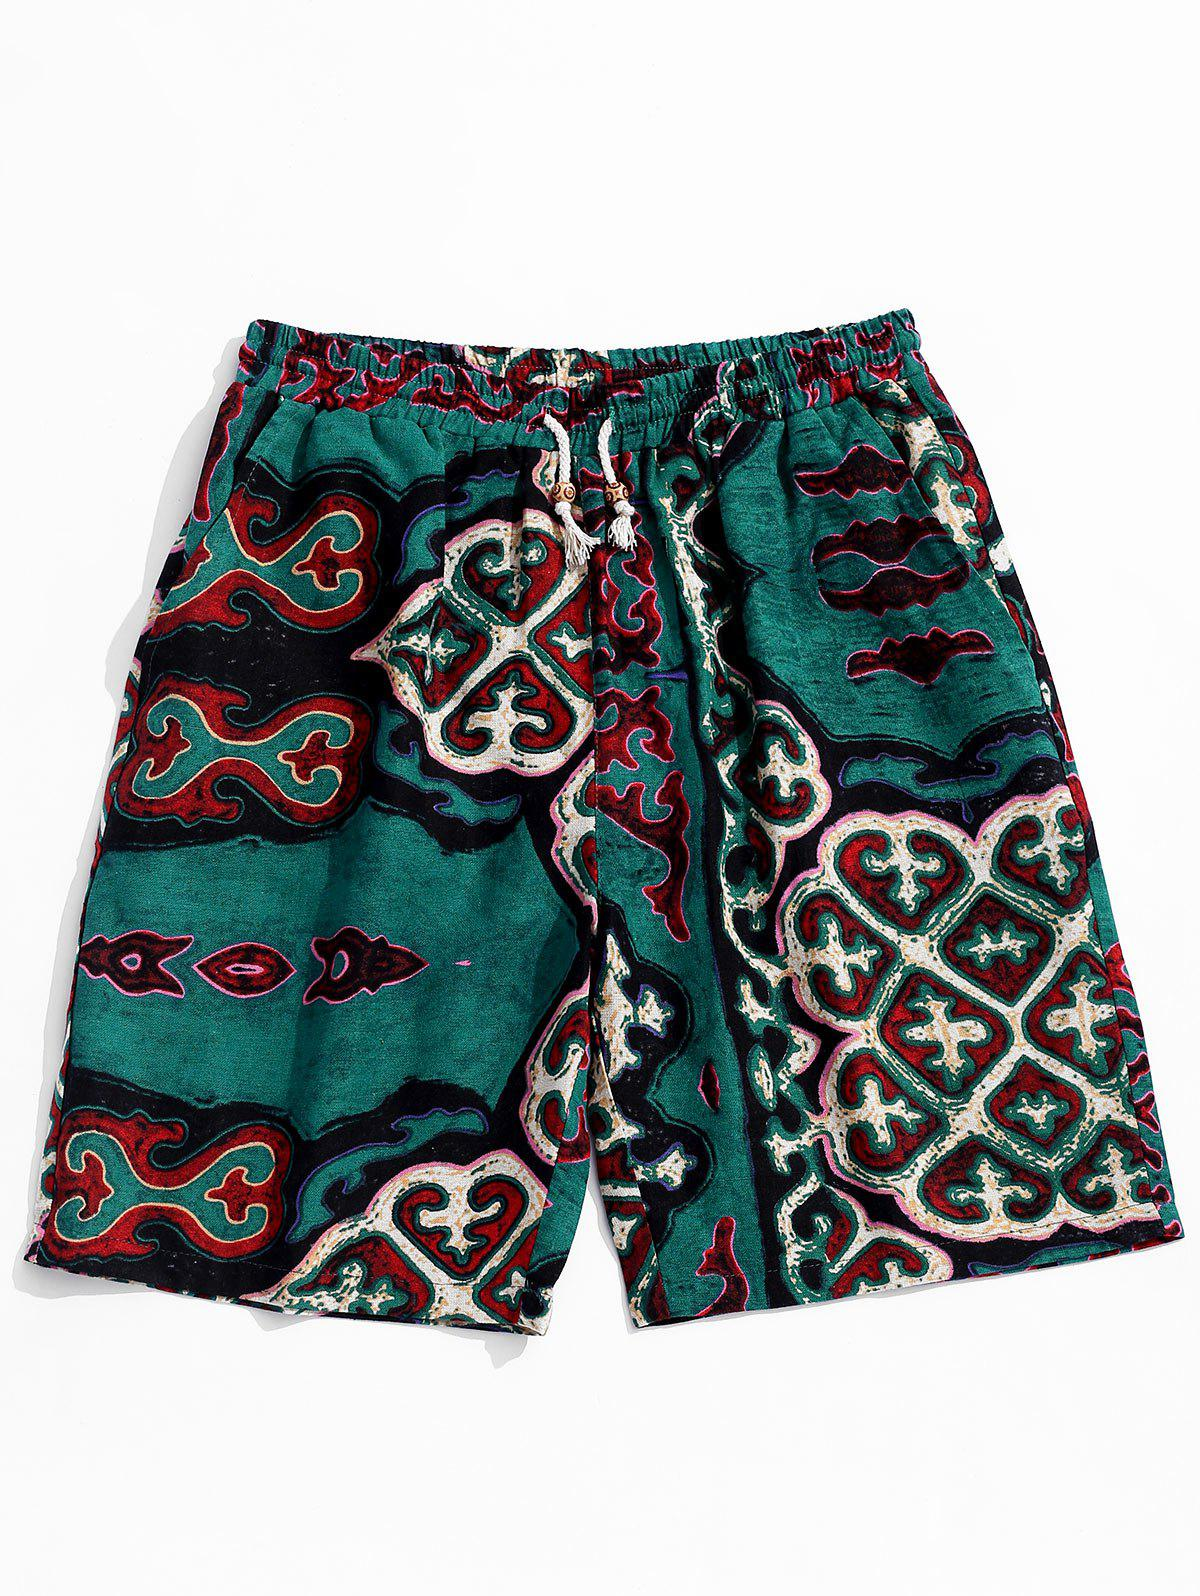 Retro Geometry Pattern Drawstring Casual Shorts - SEA TURTLE GREEN XL